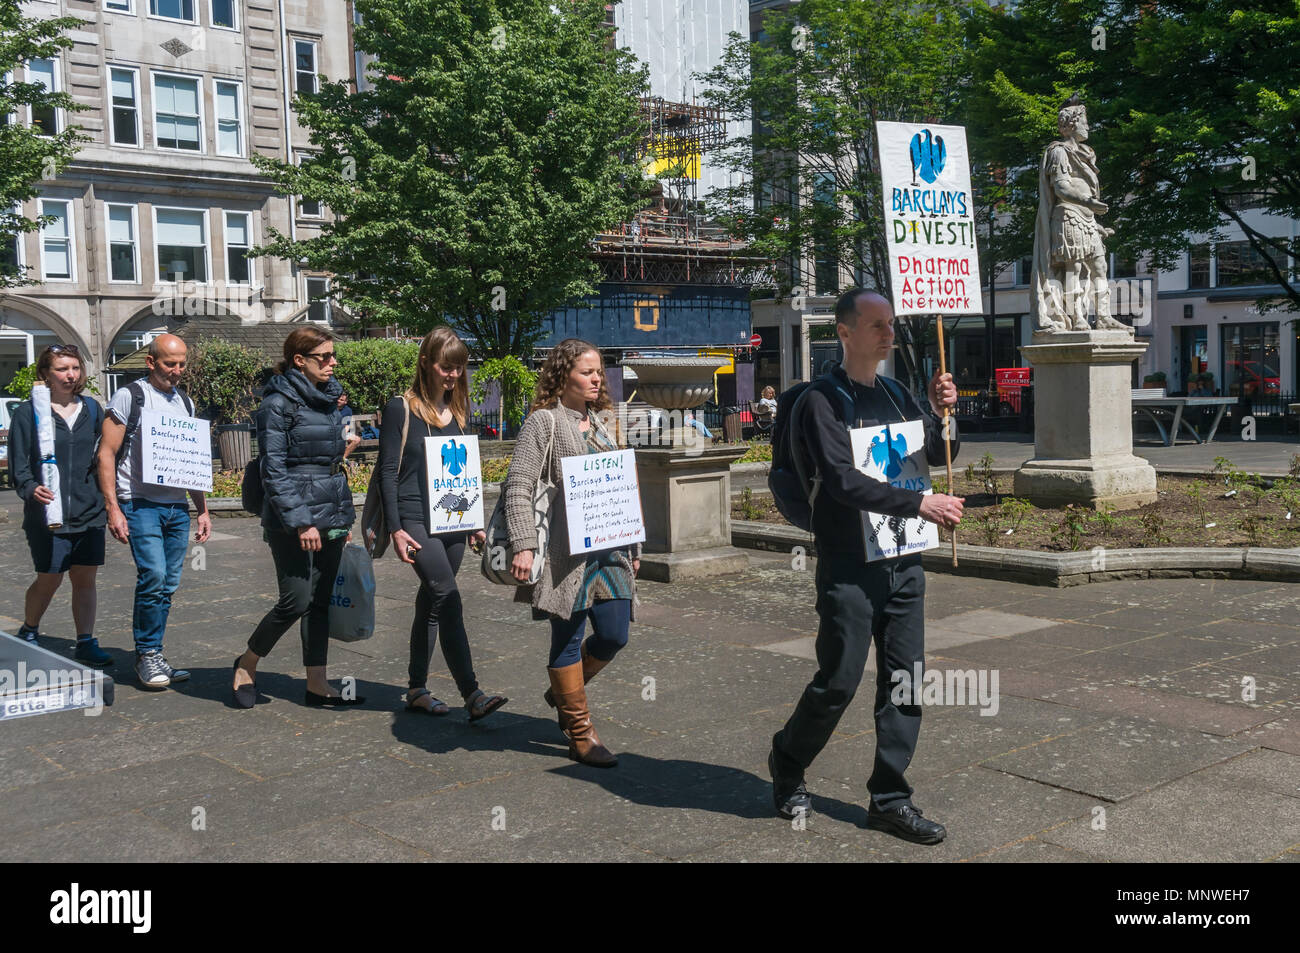 London, UK. 19th May 2018. Members of the Dharma Action Network for Climate Engagement (DANCE) march in a silent procession from Golden Square to the Piccadilly Circus branch of Barclays Bank in a monthly vigil to call on them to Stop Funding Climate Chaos. Credit: Peter Marshall/Alamy Live News - Stock Image